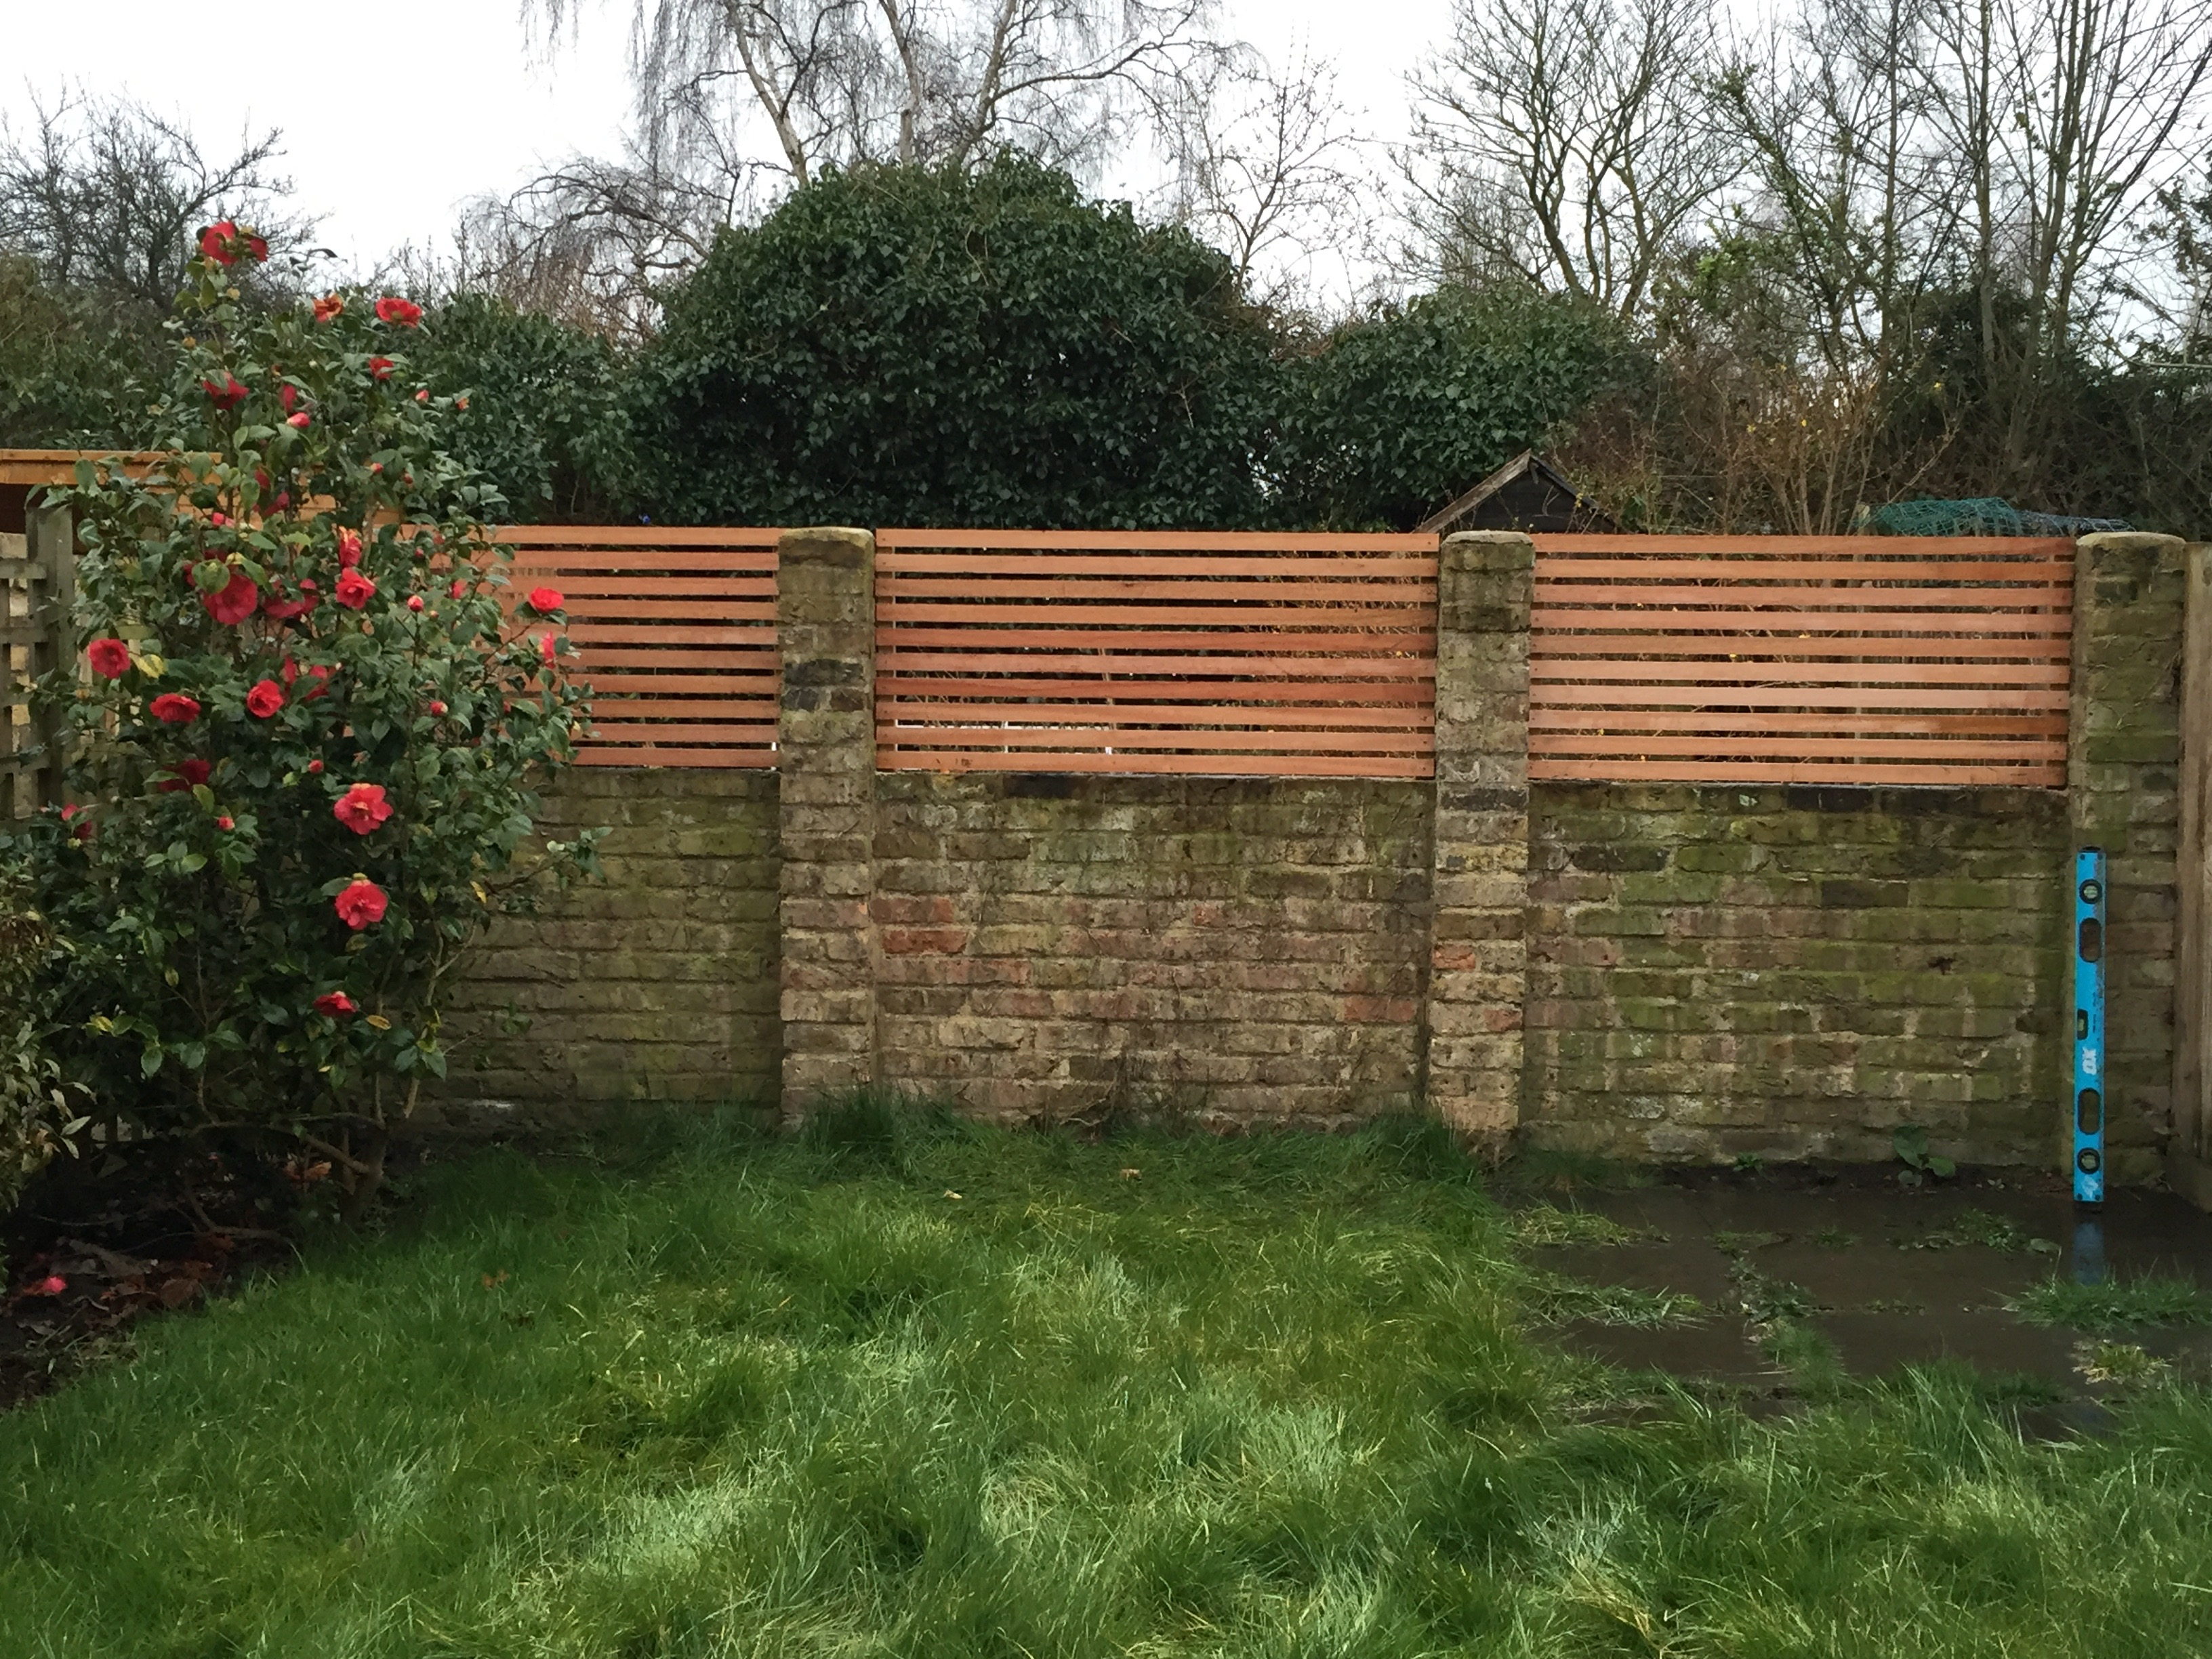 Maranti hard wood trellis on the wall.